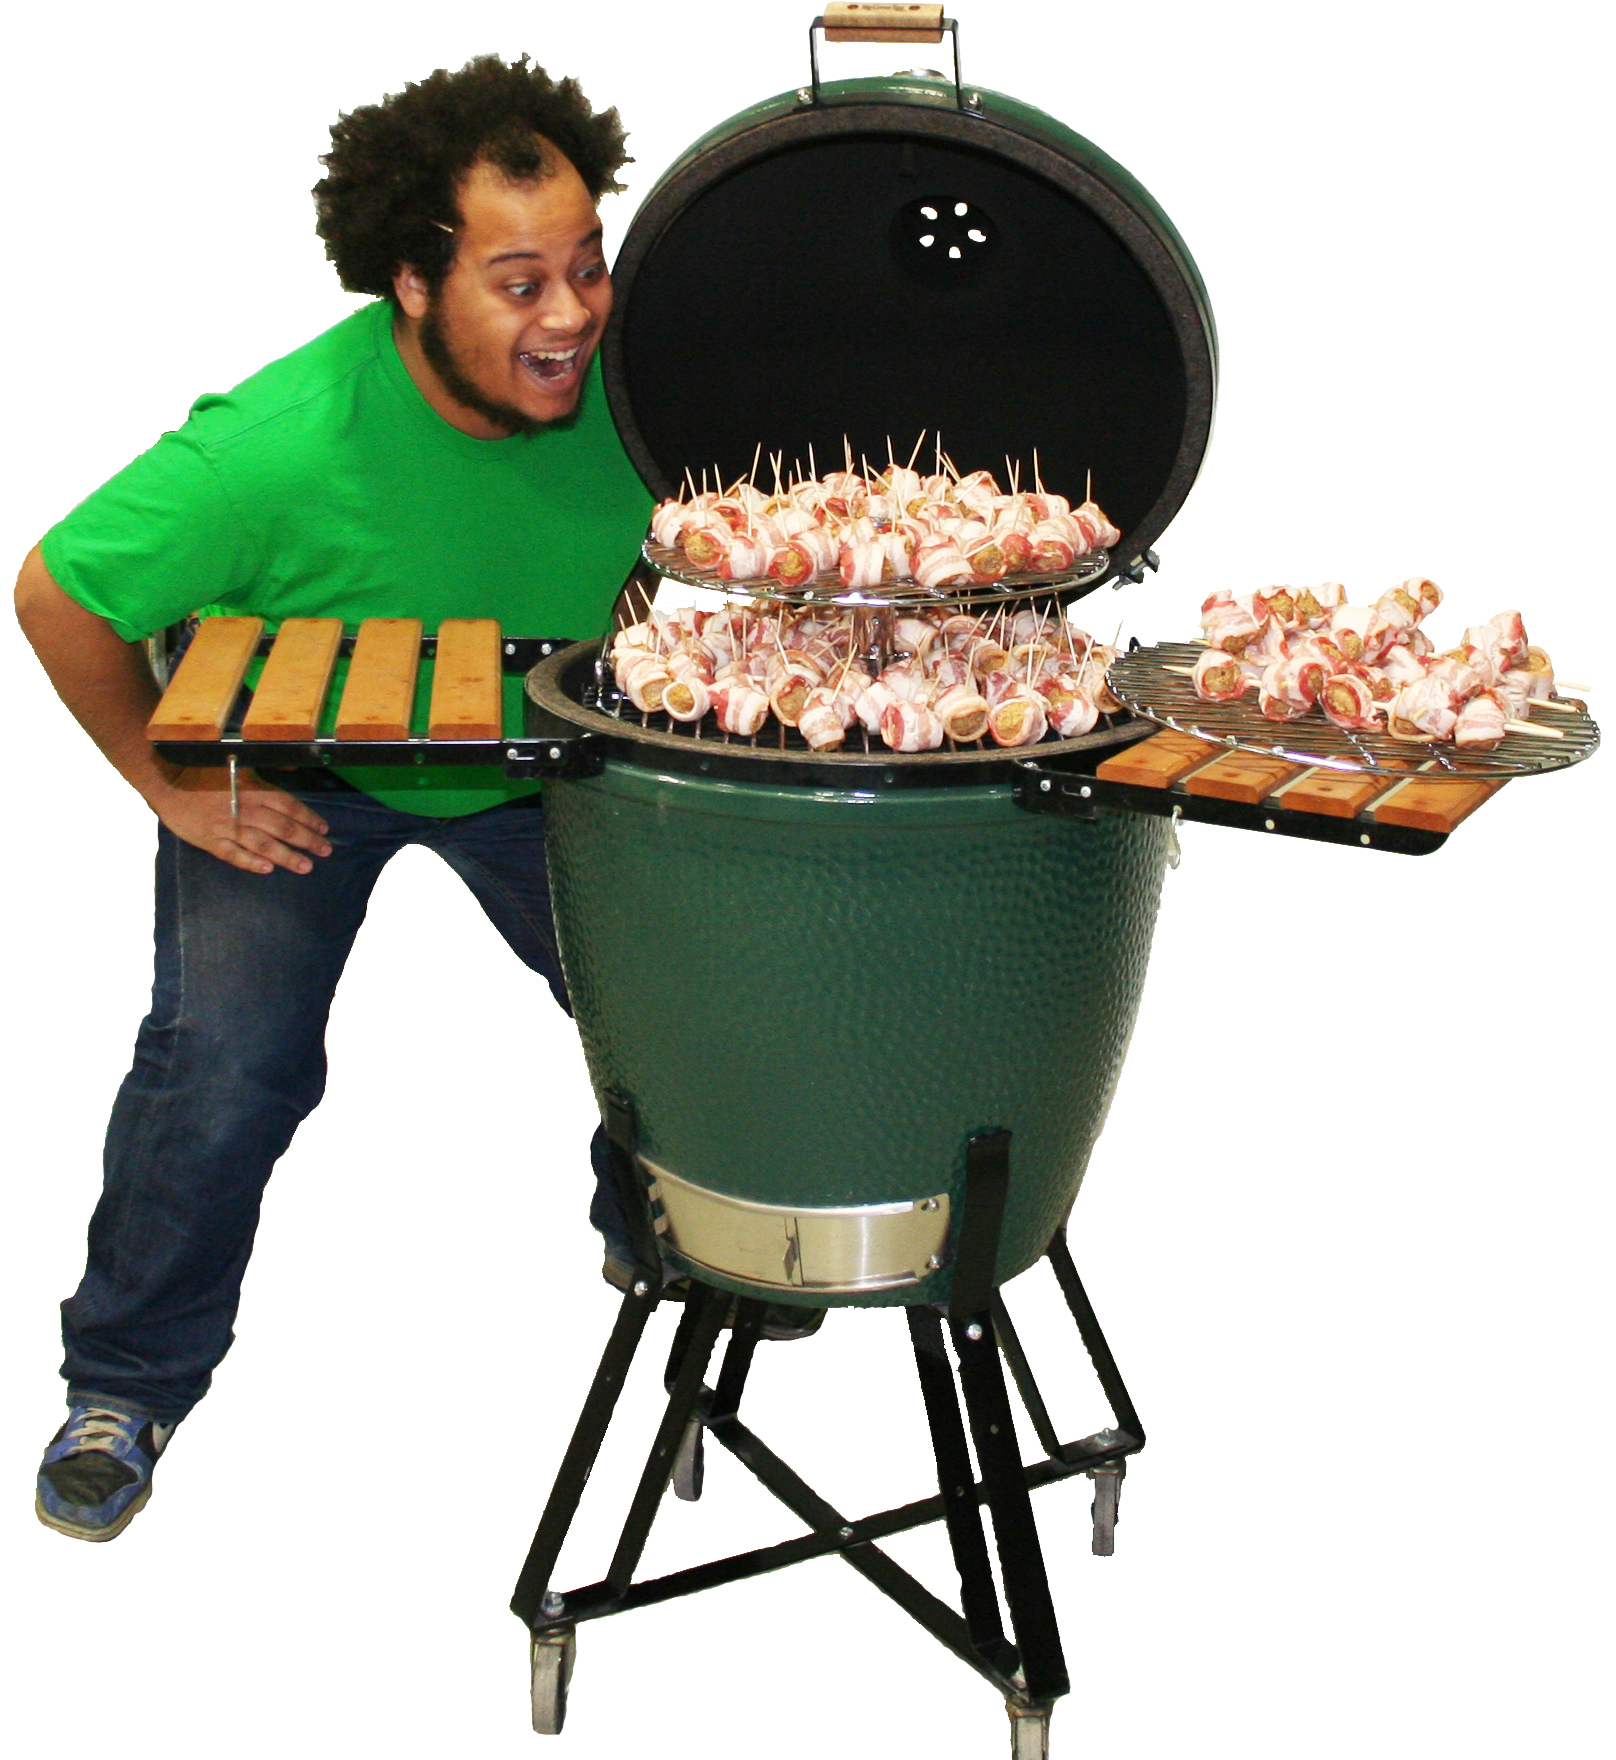 Big Green Egg Outdoor Kitchen: Everything's Mo' Bettah' On Da' Hibachi